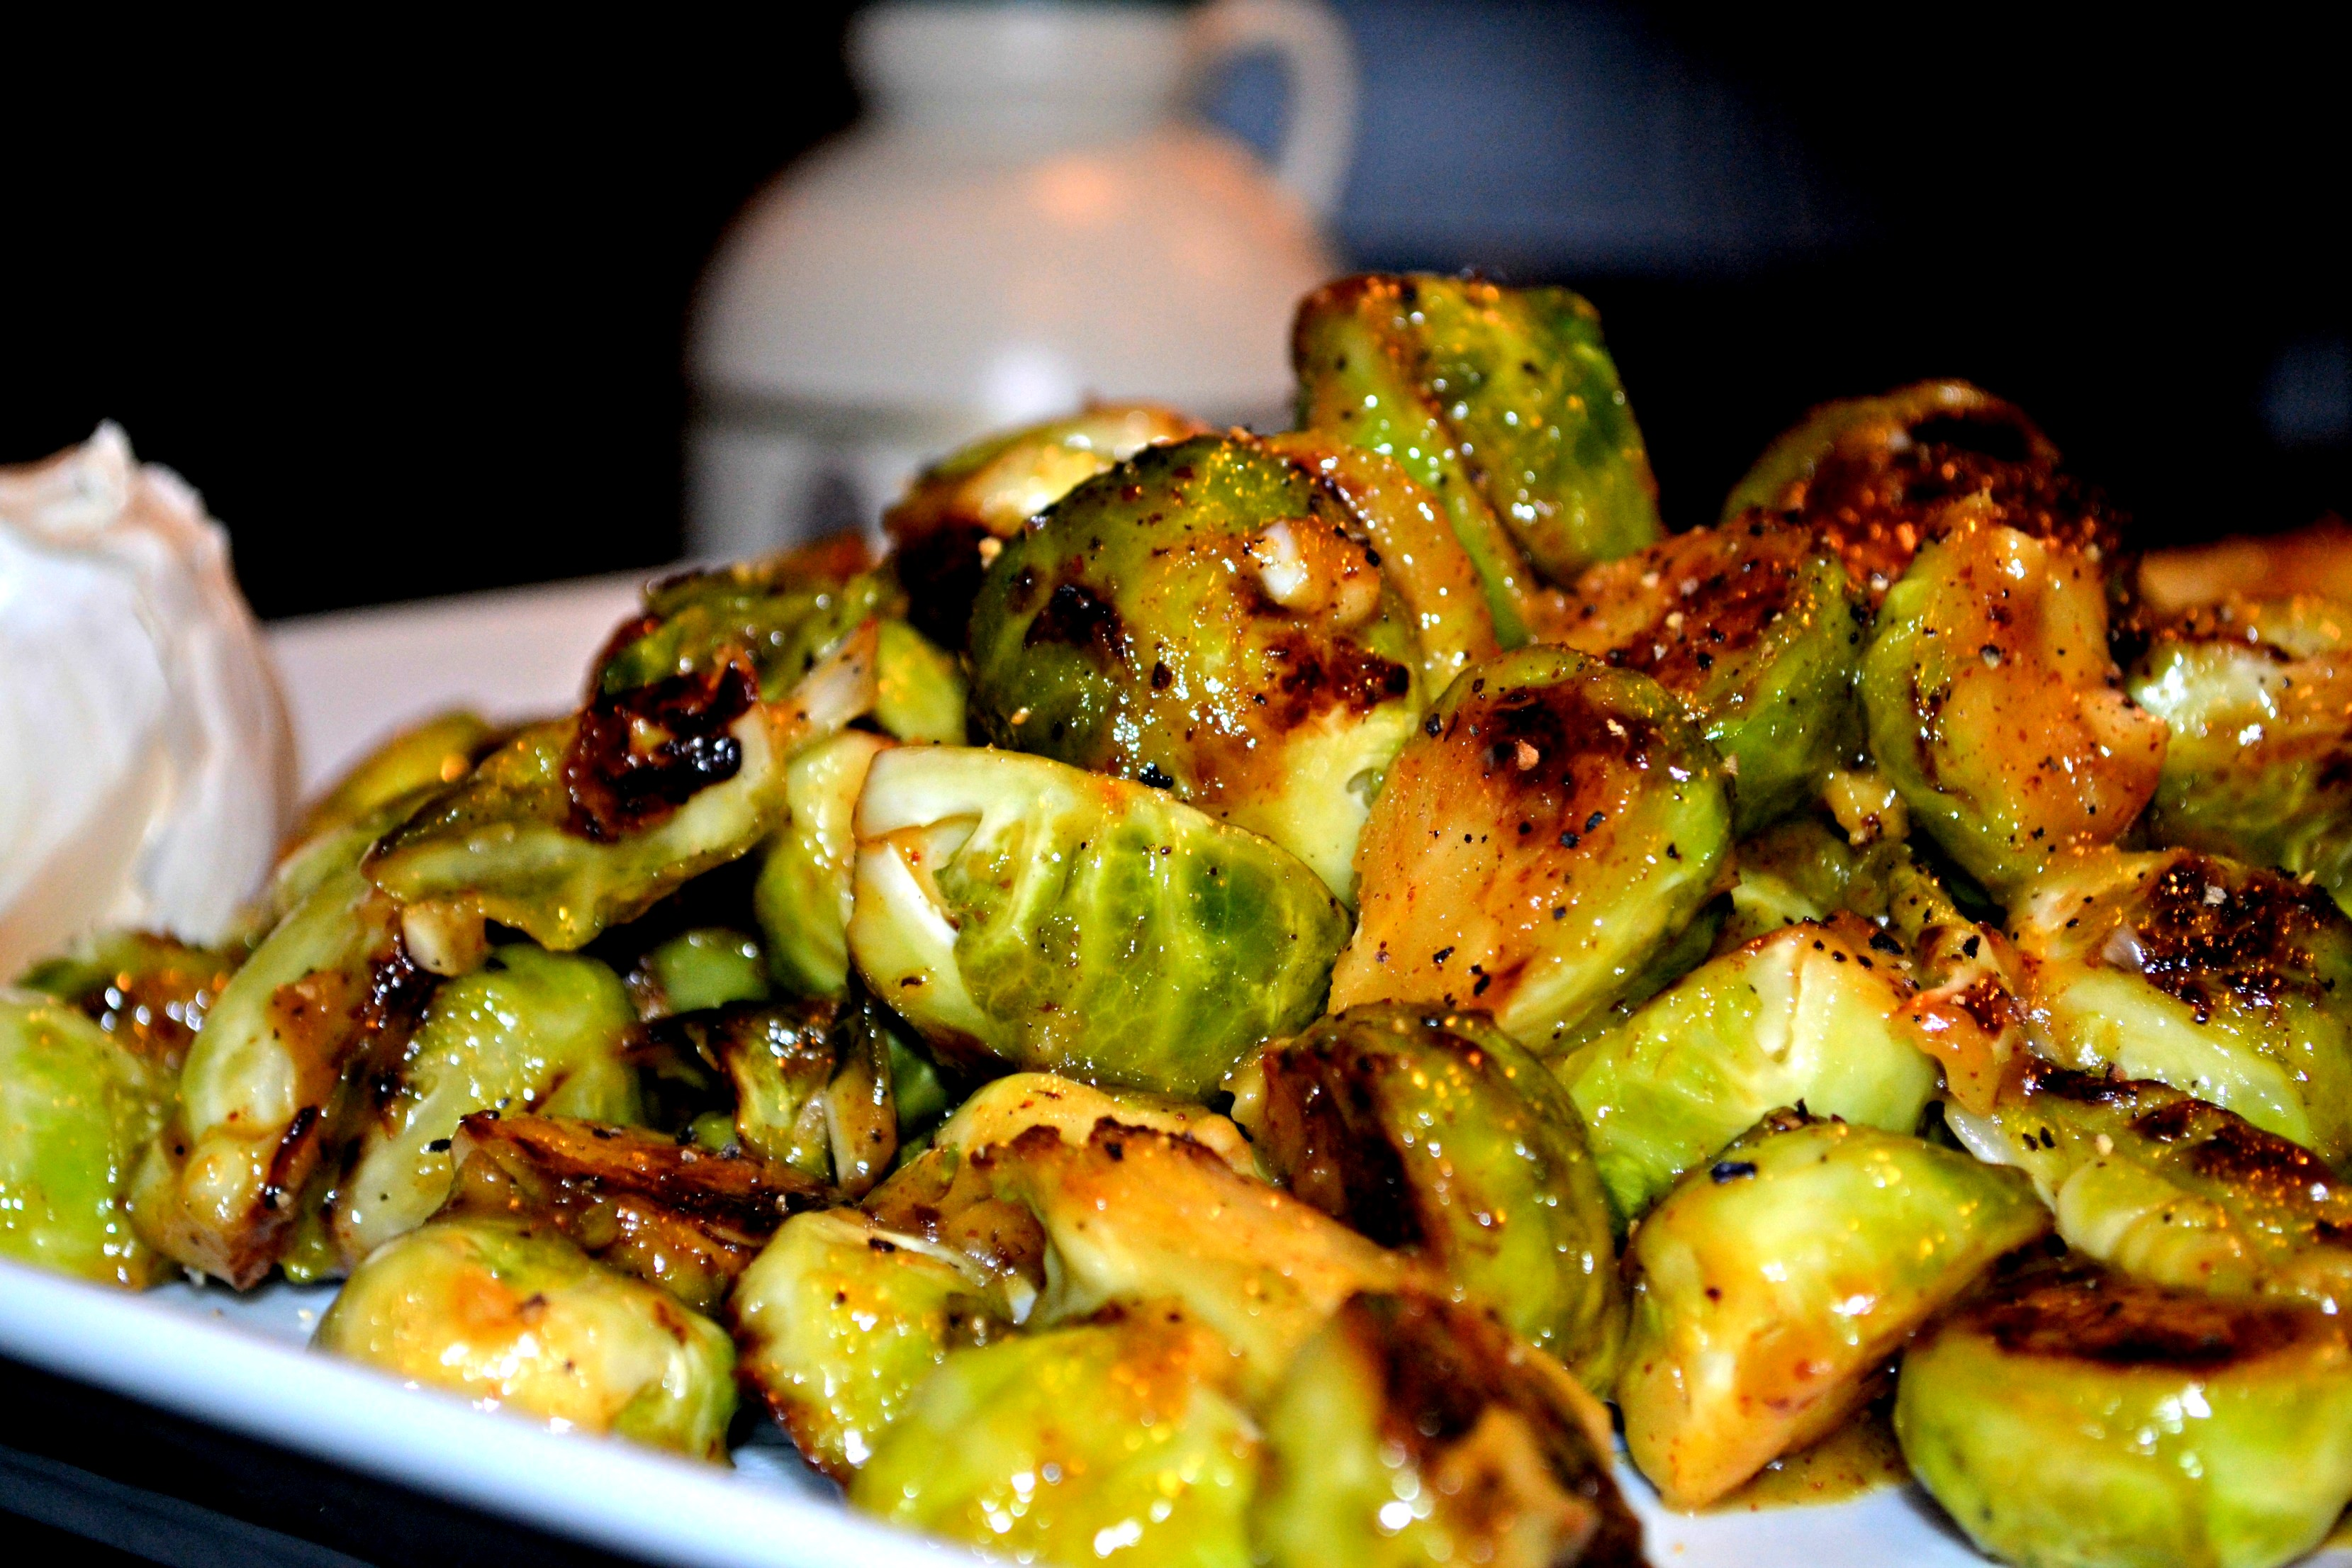 brussels sprouts sautéed with garlic sauteed brussels sprouts with ...